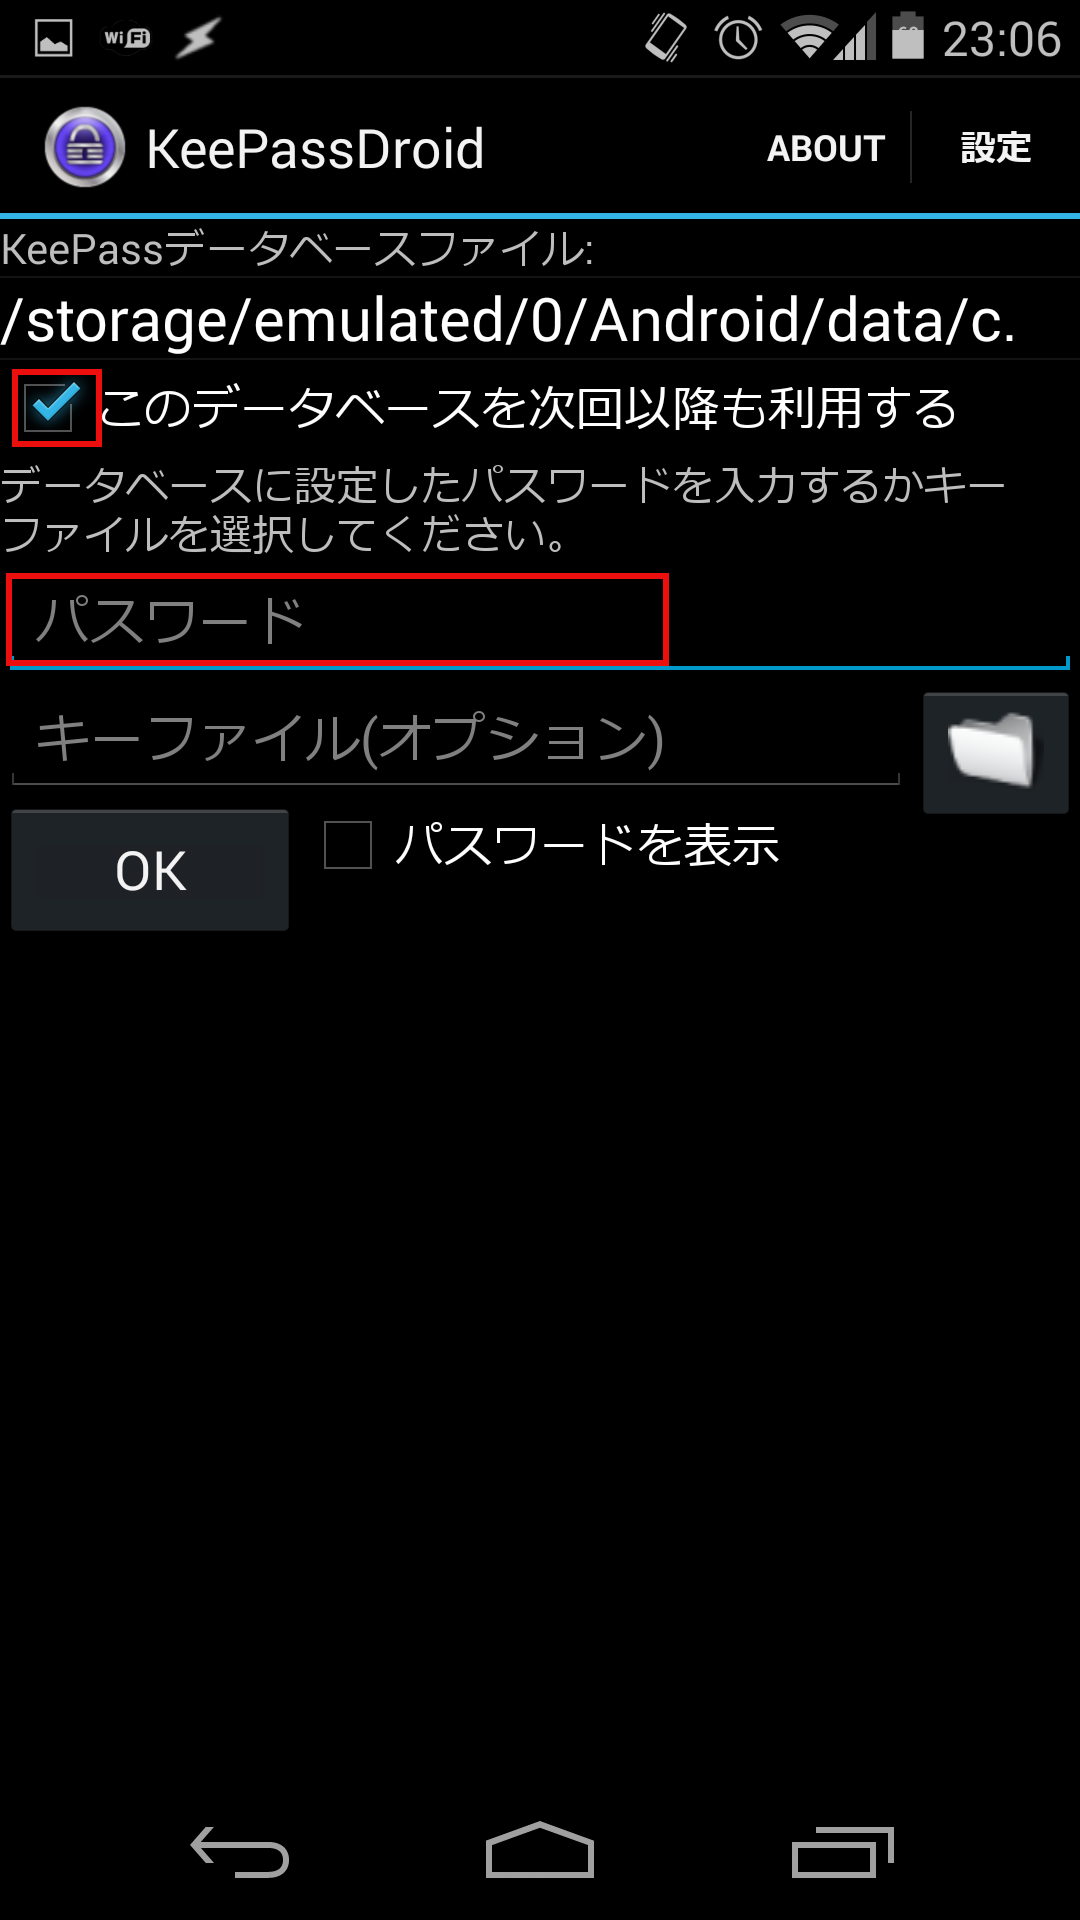 Screenshot_2013-12-09-23-06-33